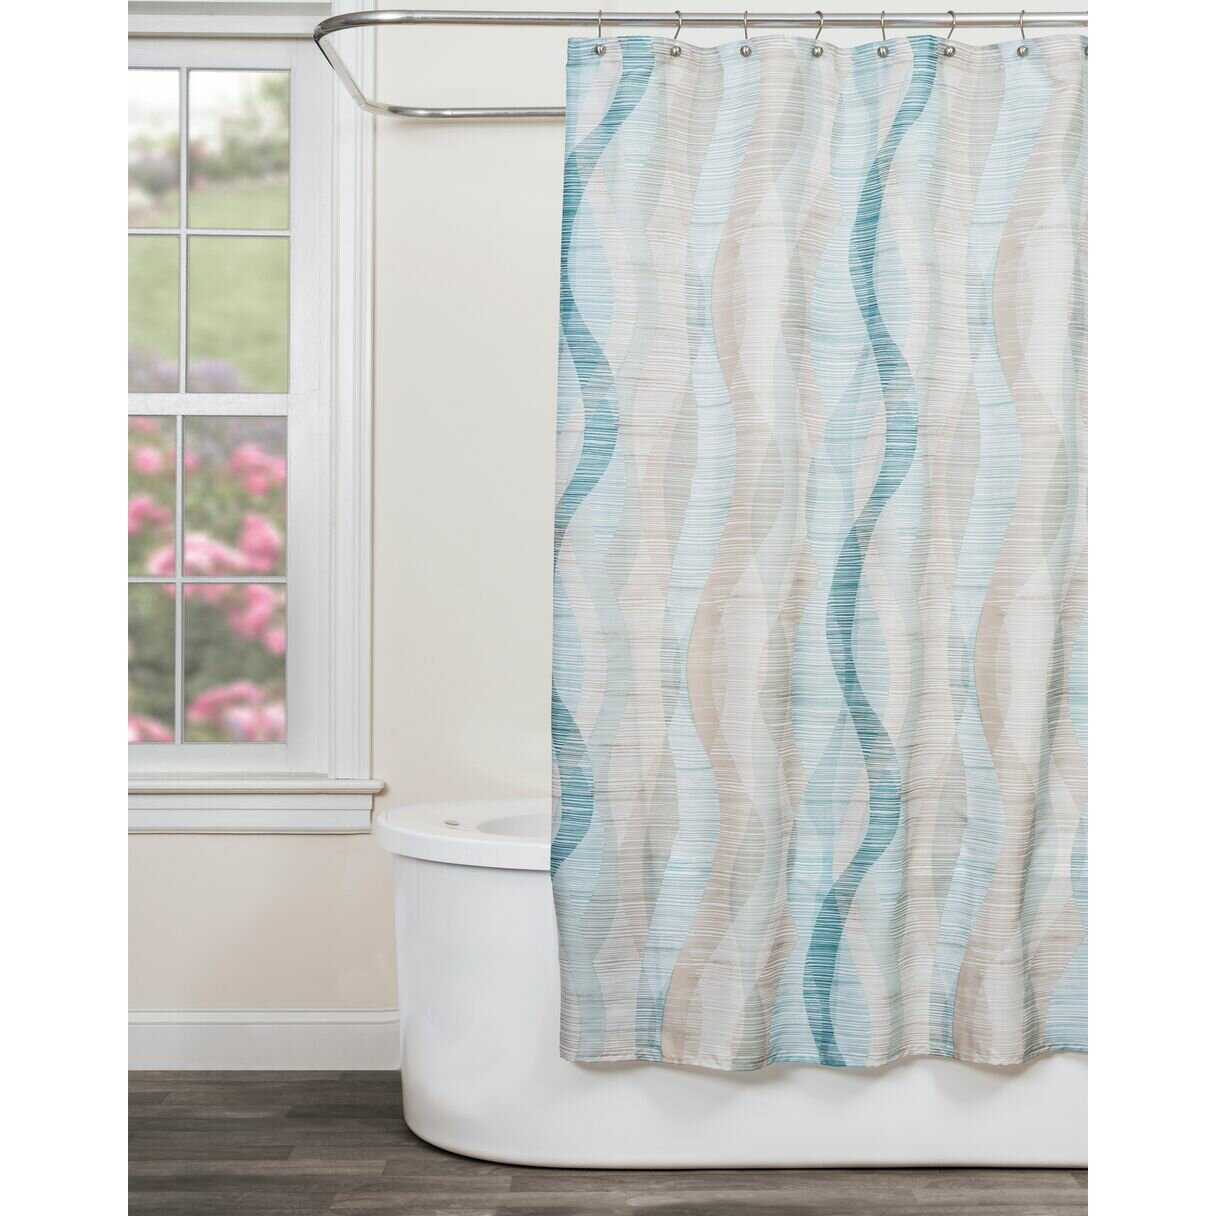 Striped Shower Curtains Youll Love Wayfair - Brown and white striped shower curtain